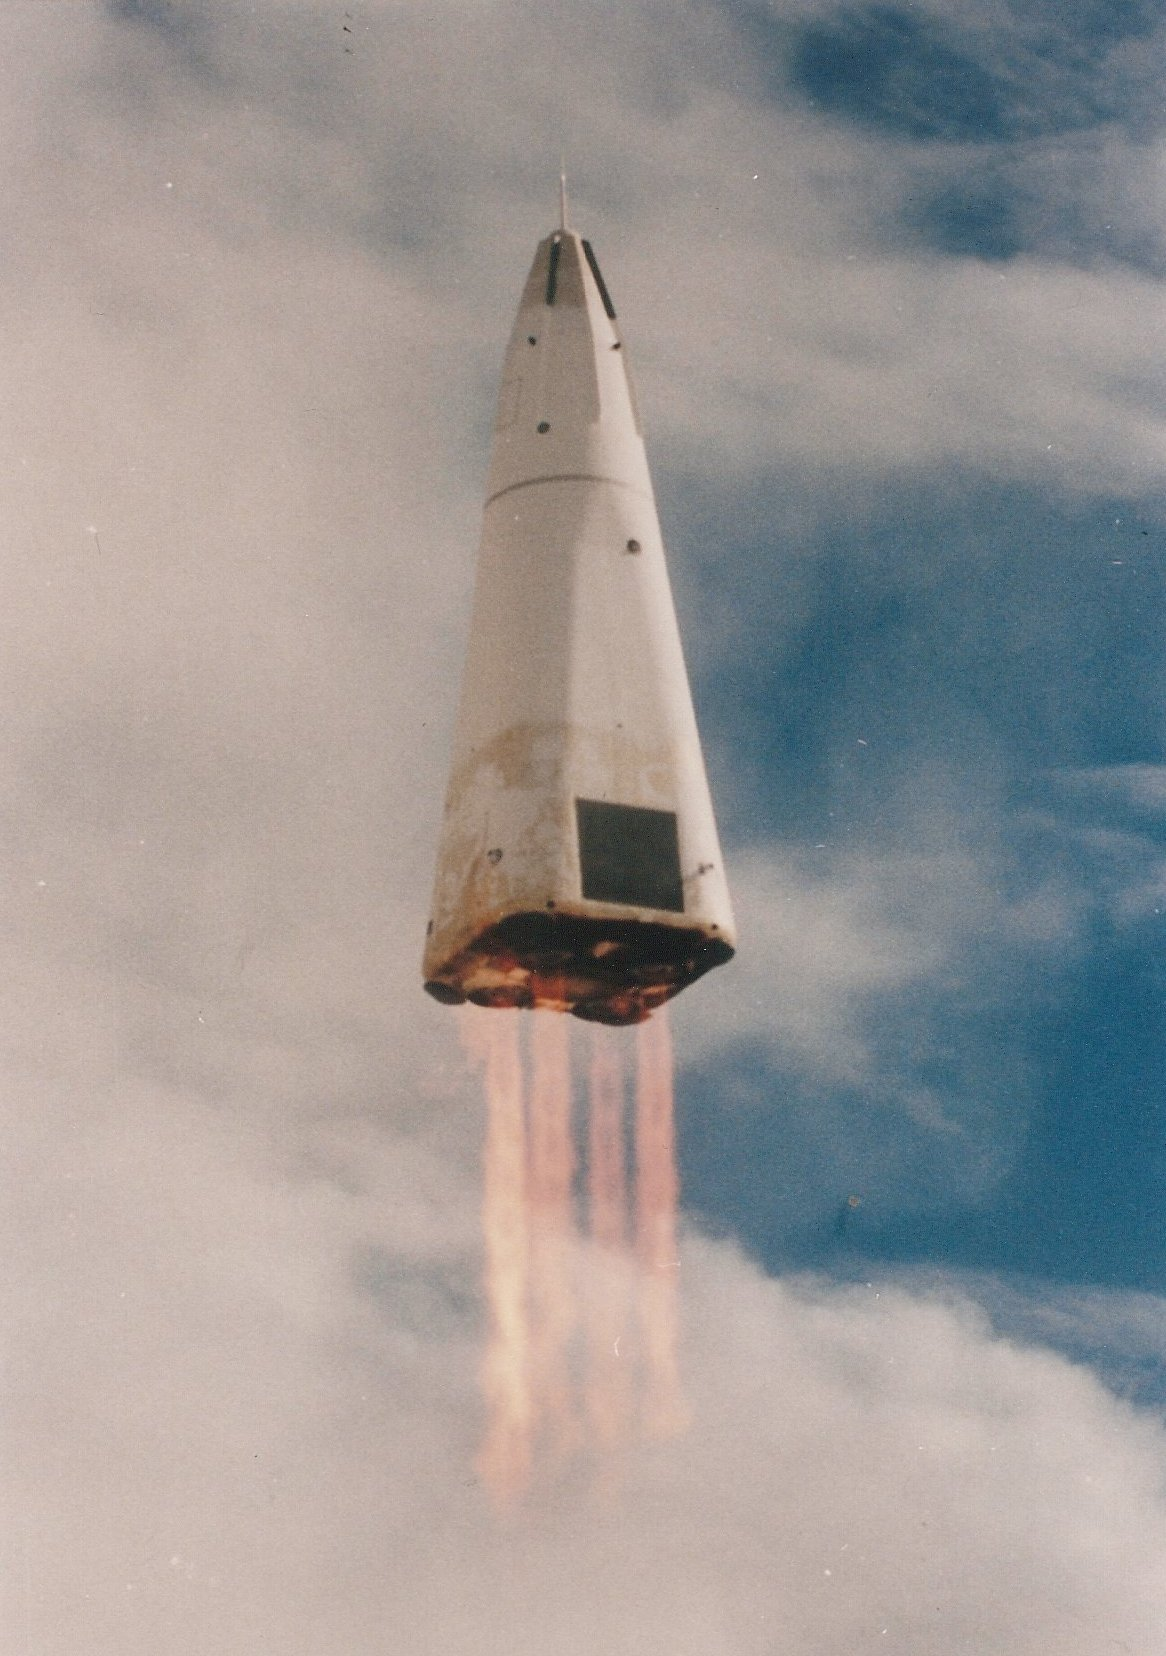 Fourth Flight of the DC-X, 1995 Stellar Team Award